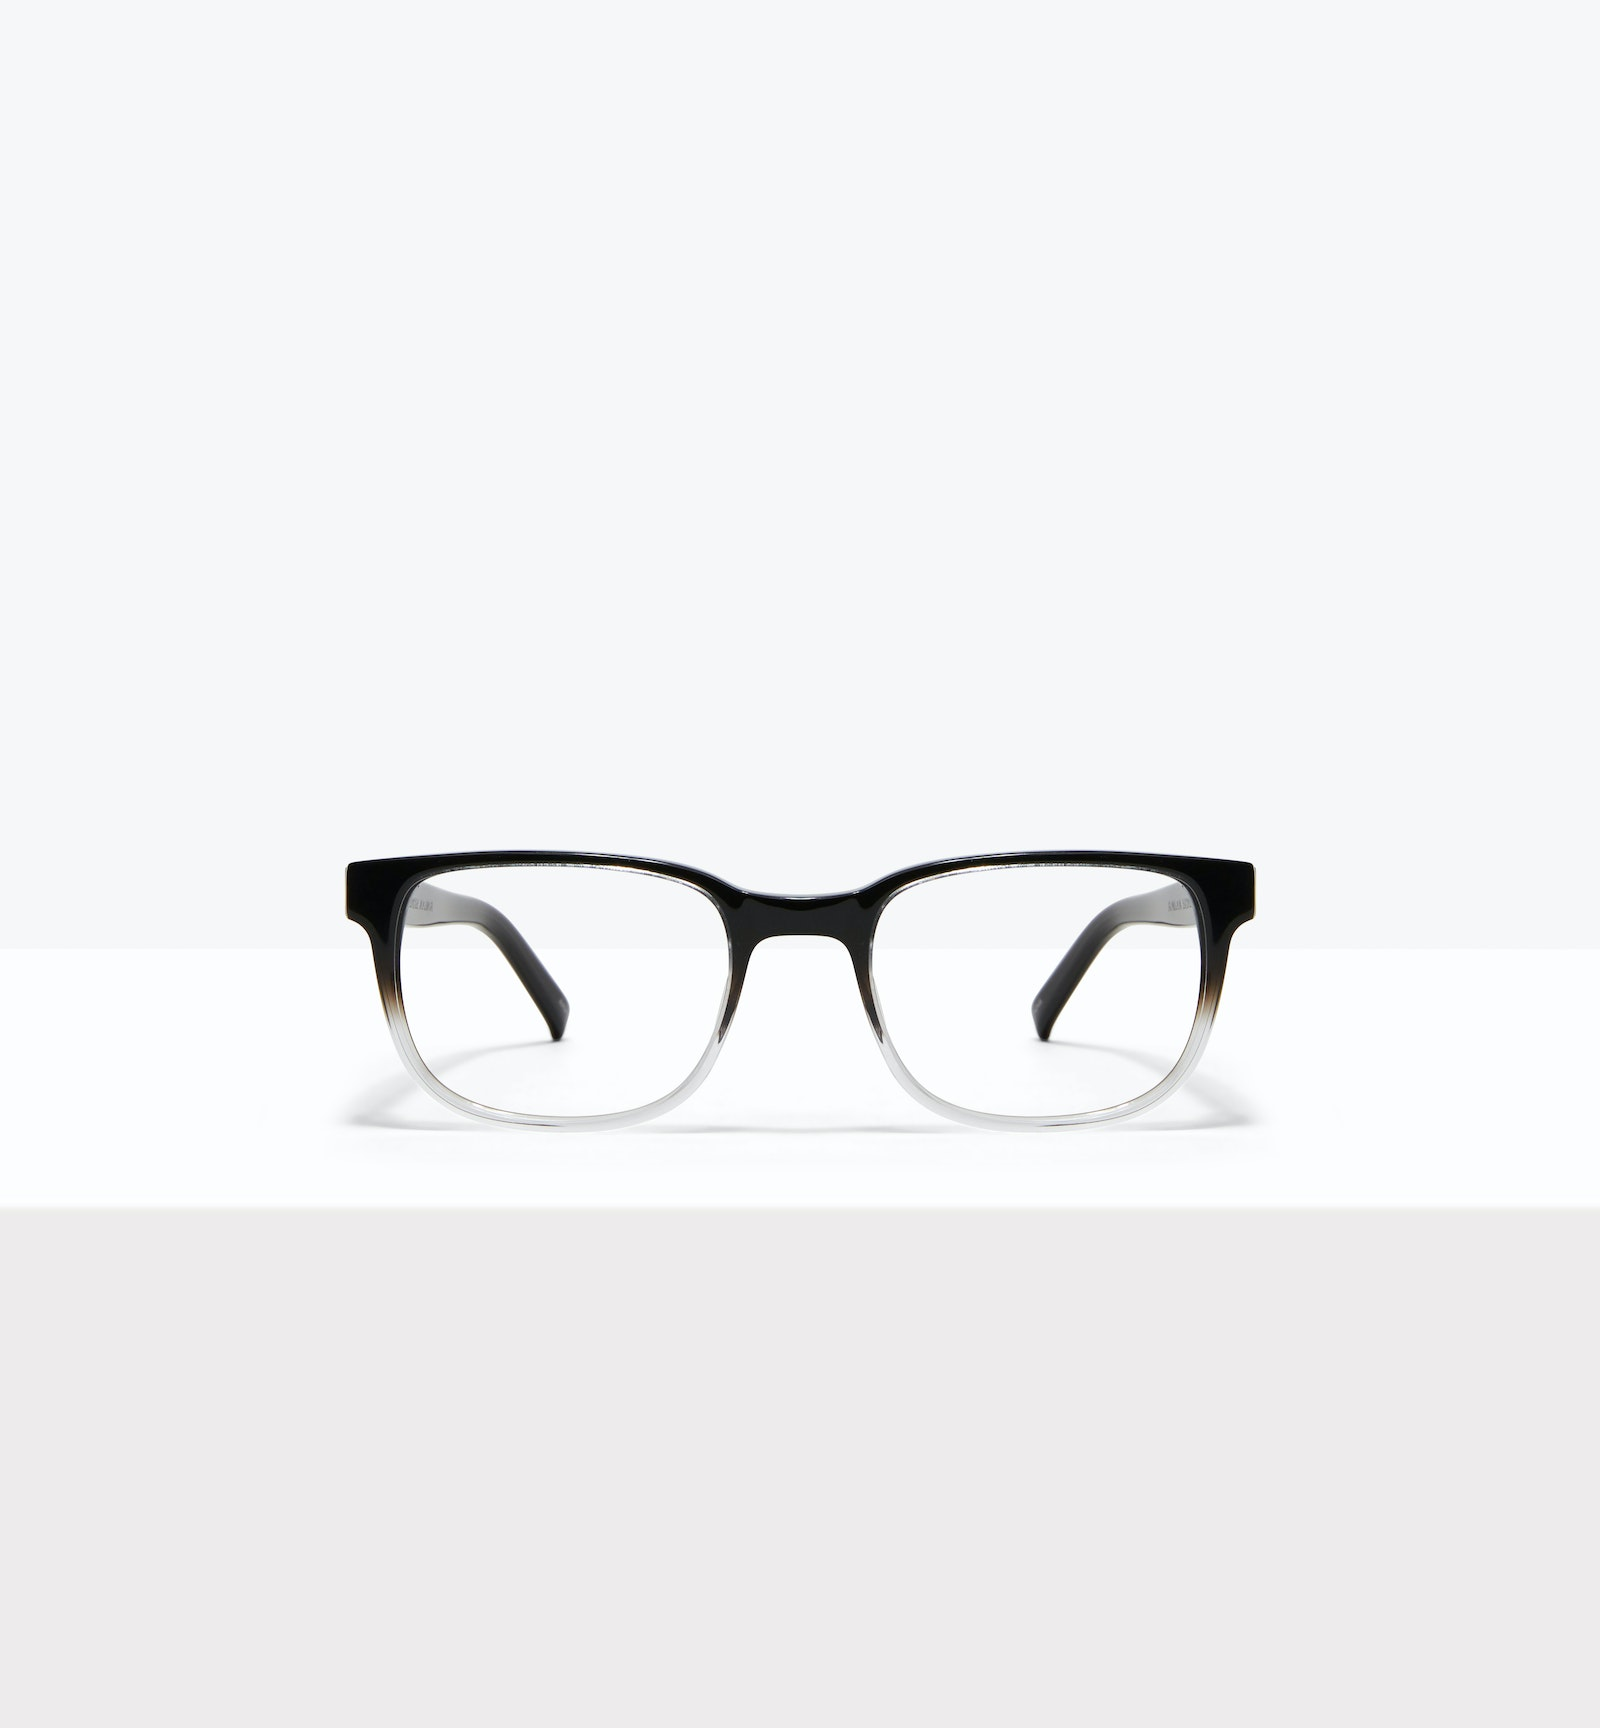 Affordable Fashion Glasses Square Eyeglasses Men Role Onyx Clear